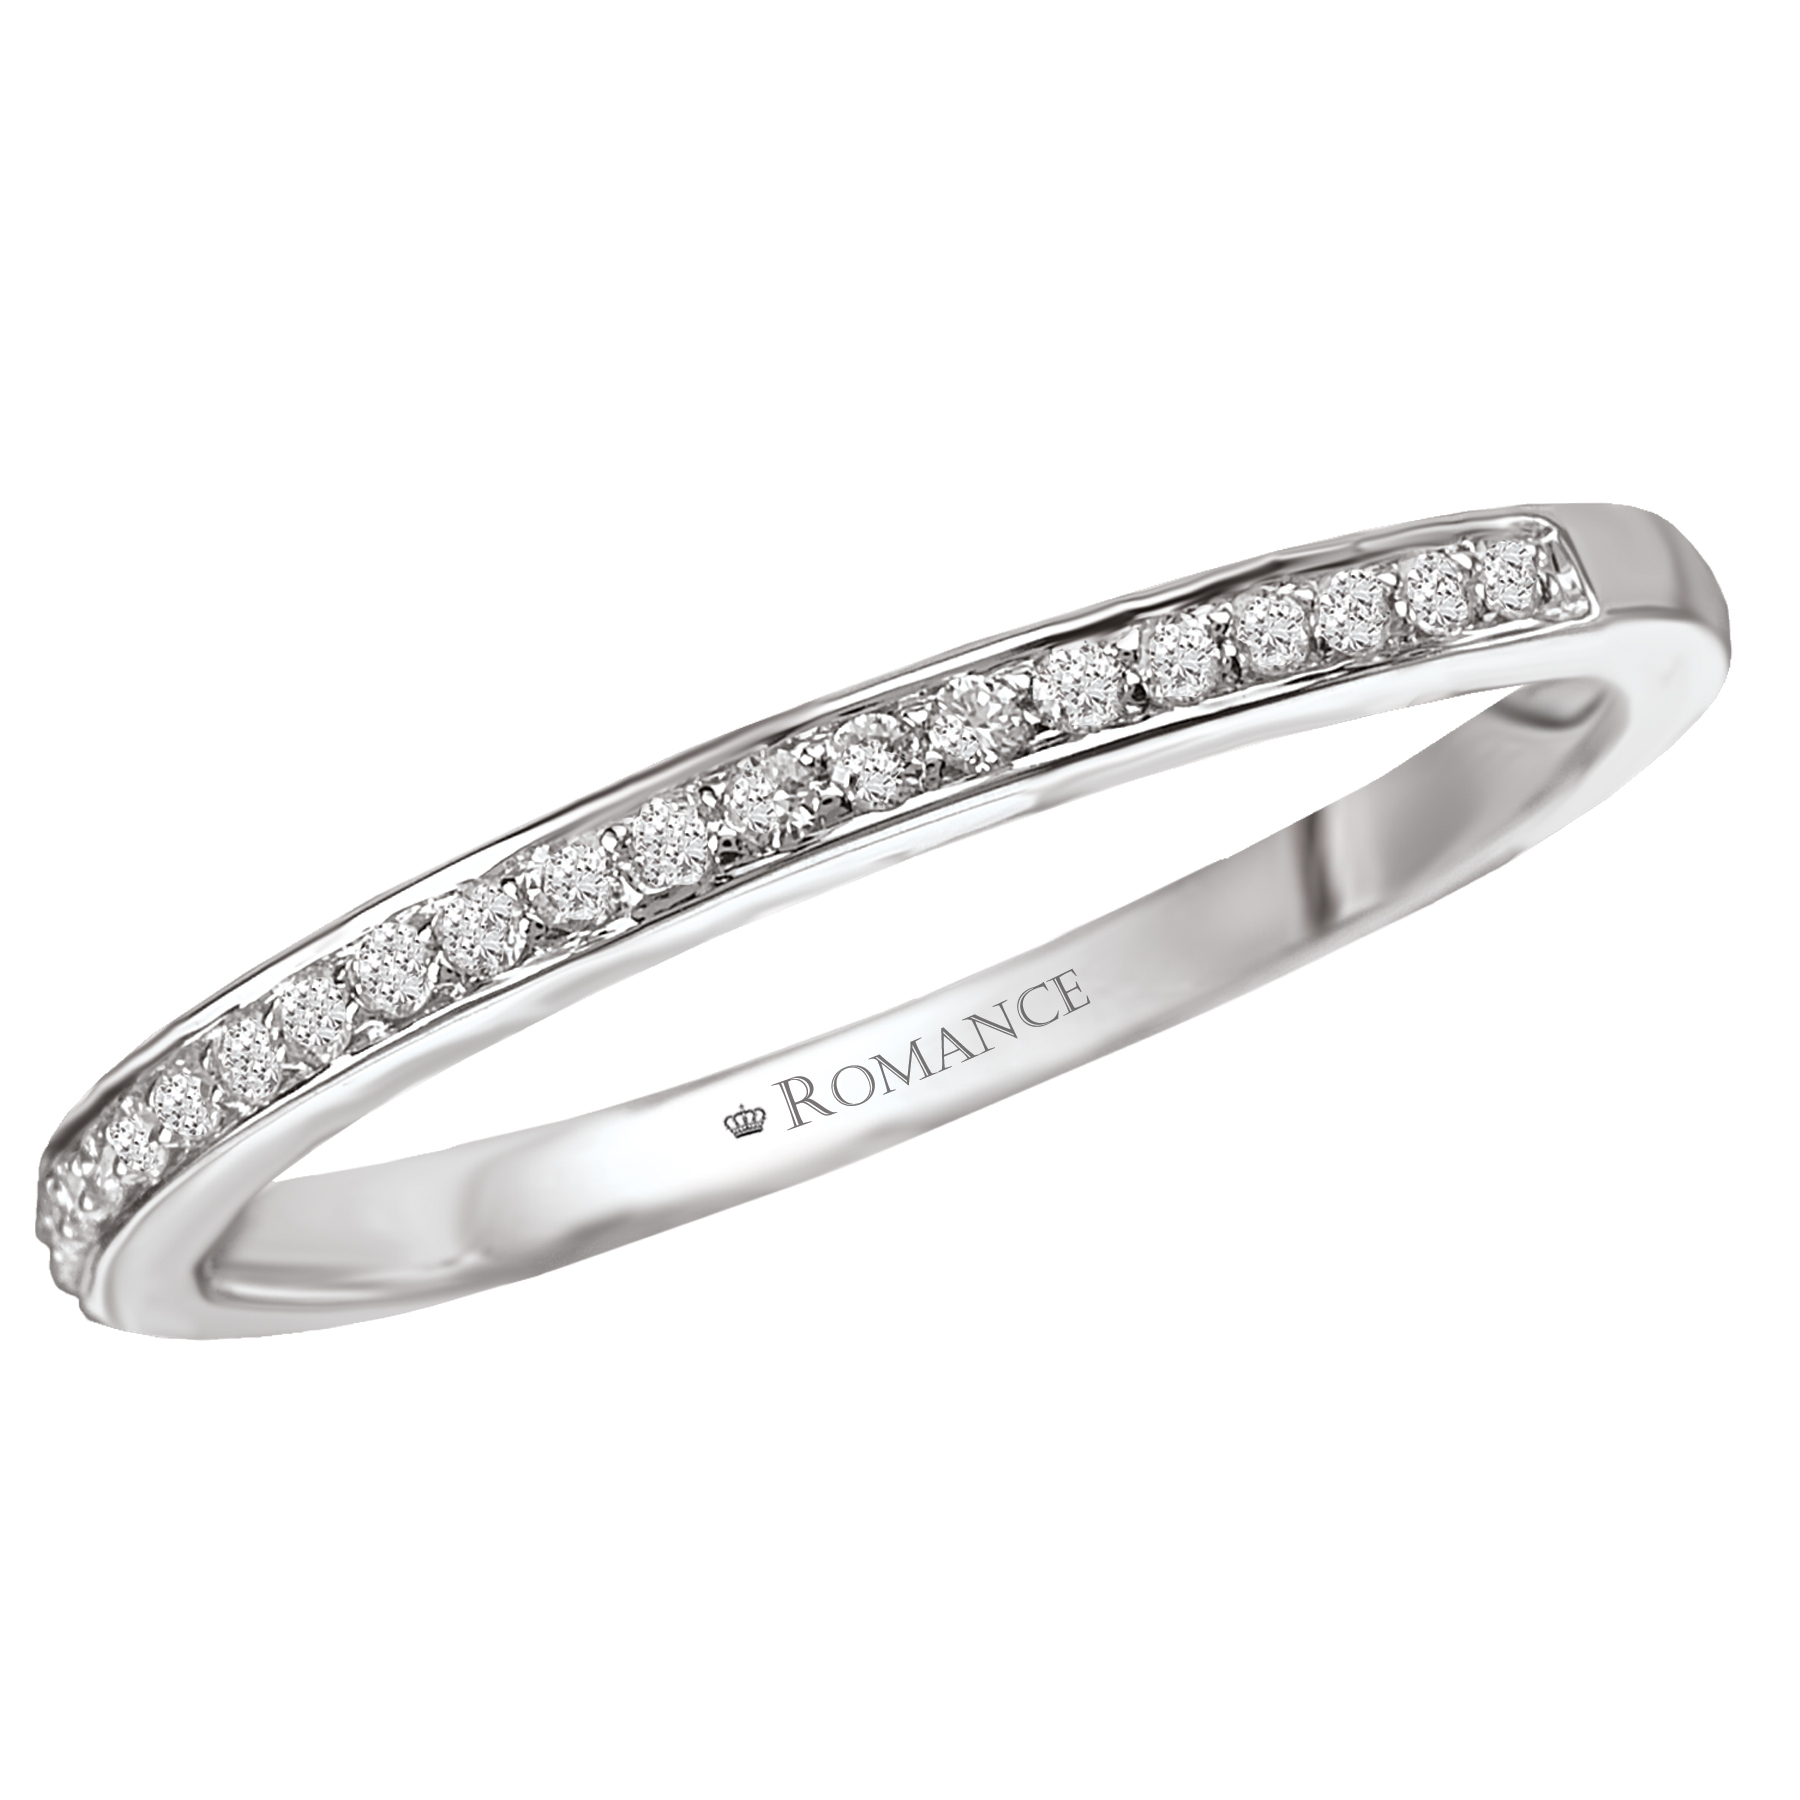 Romance Wedding Bands 118151-W product image